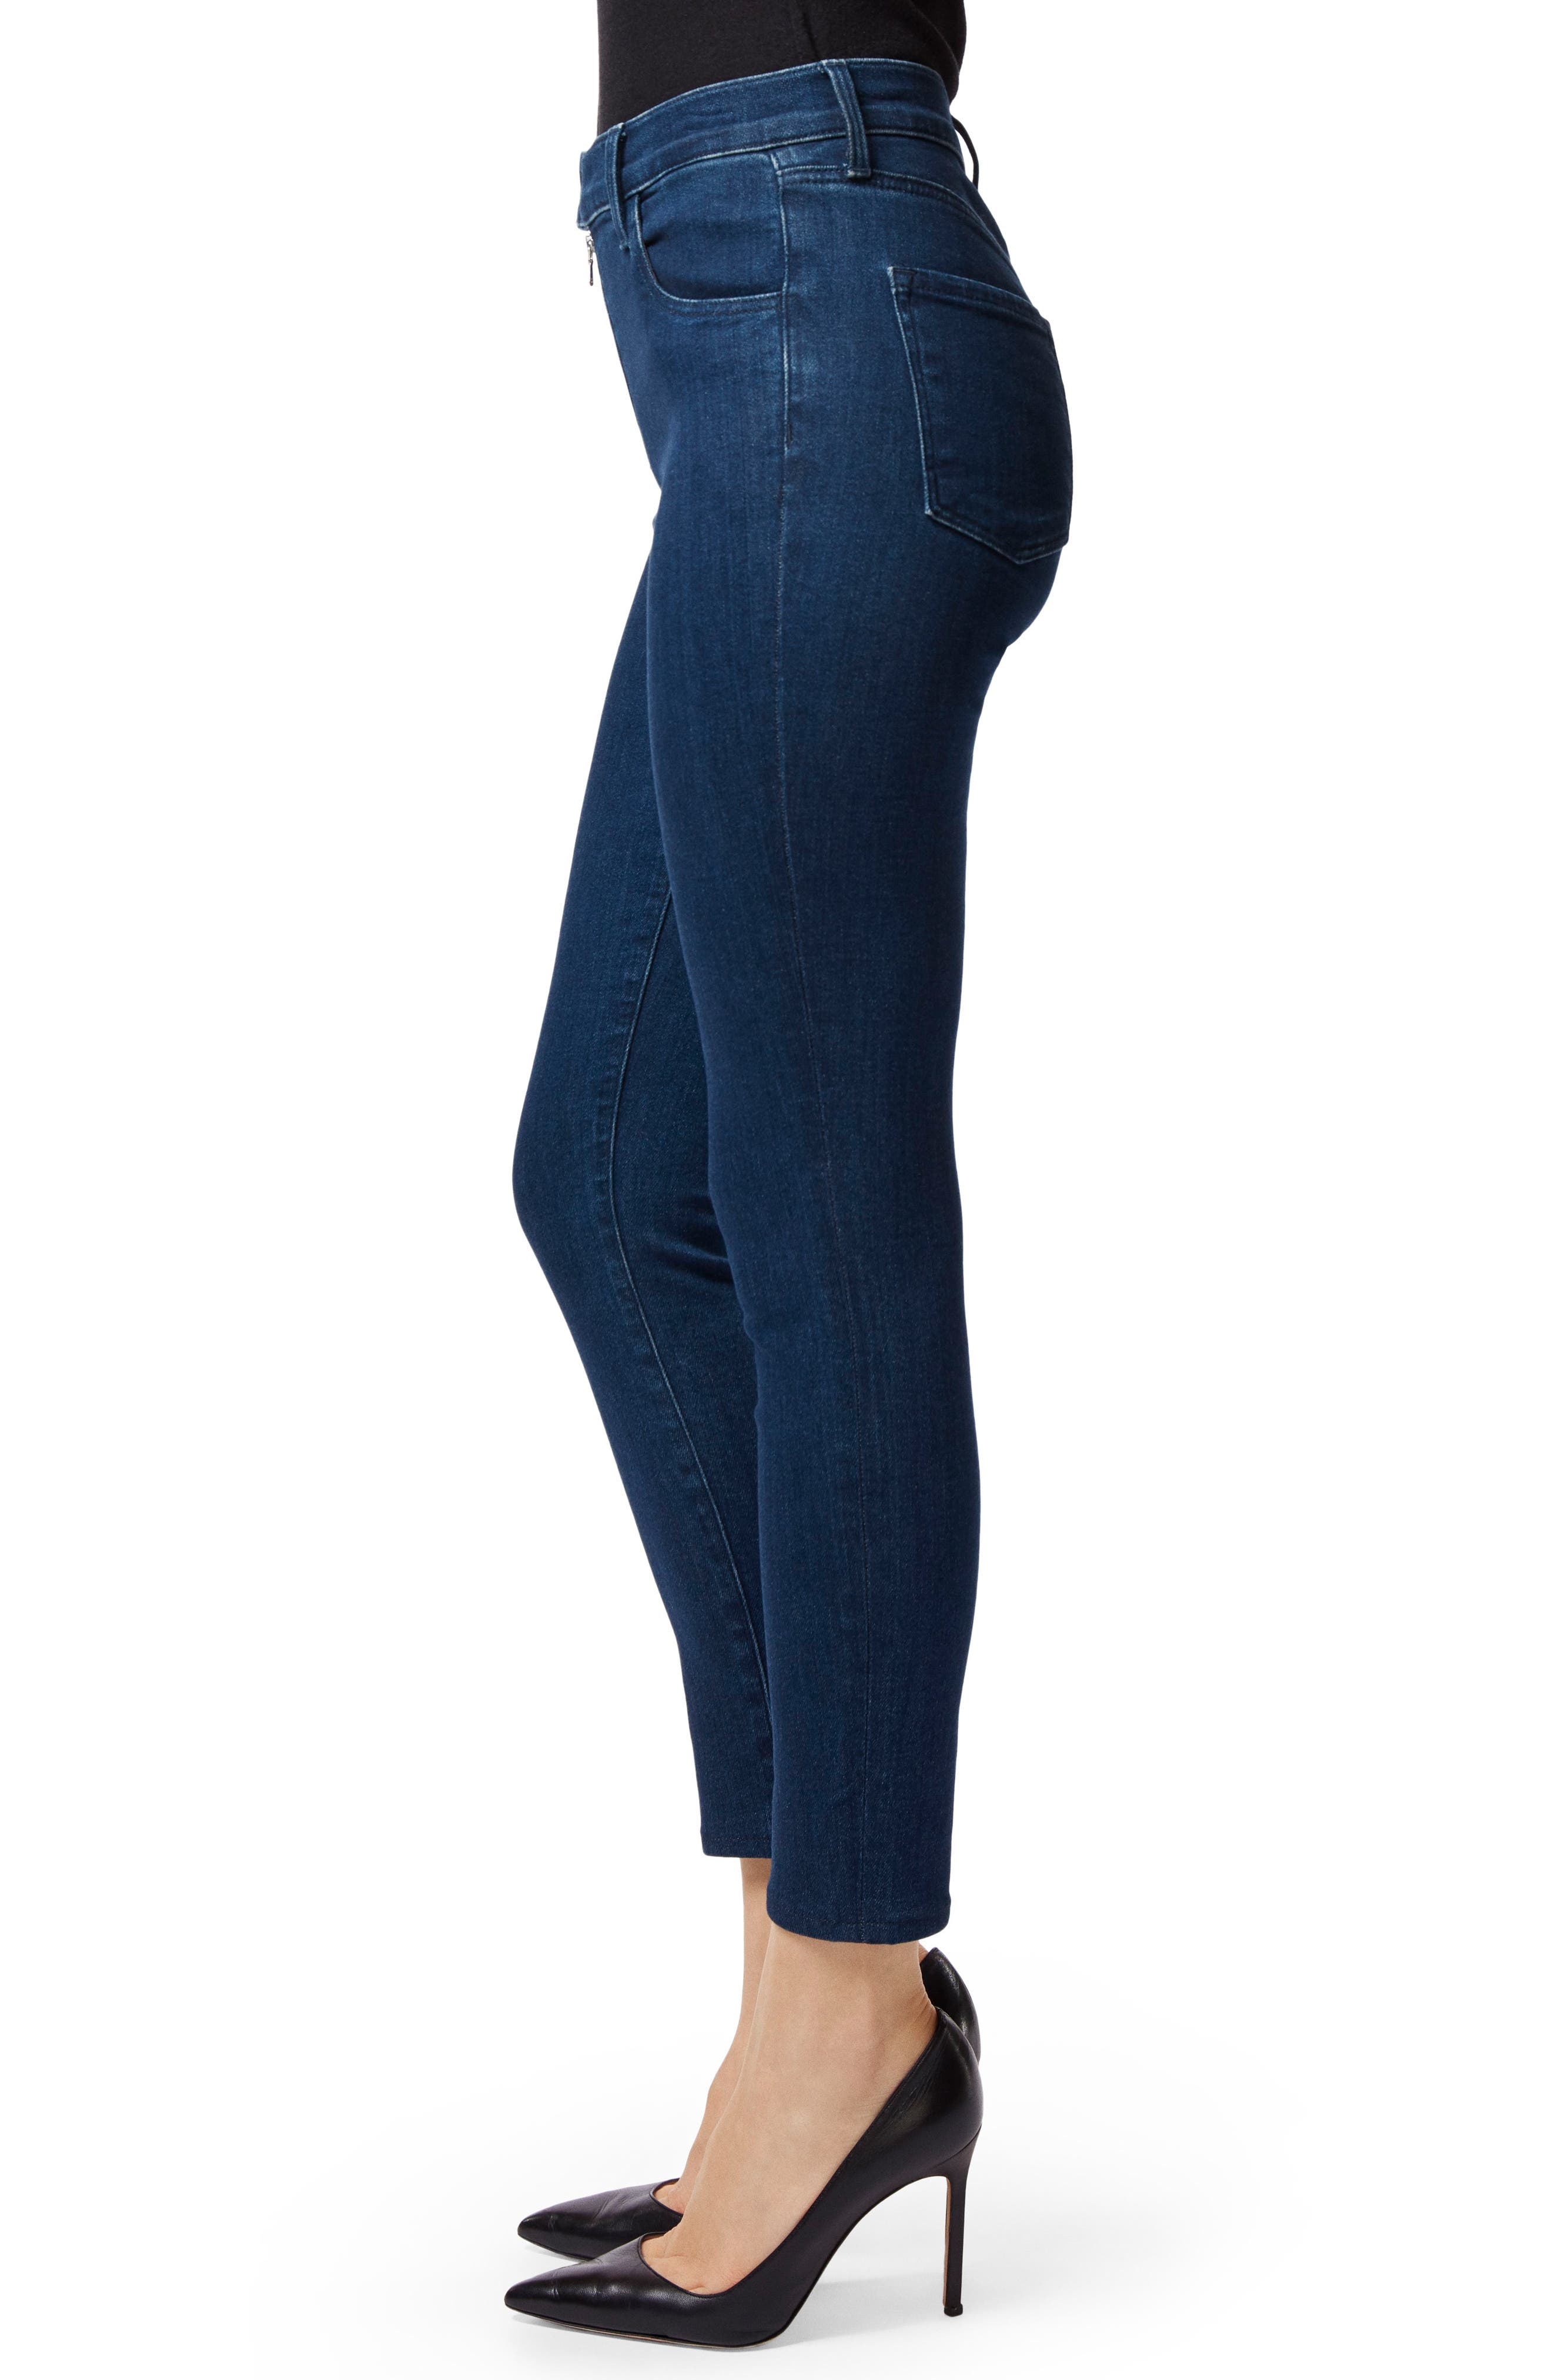 Alana Exposed Zip High Waist Ankle Skinny Jeans,                             Alternate thumbnail 3, color,                             439